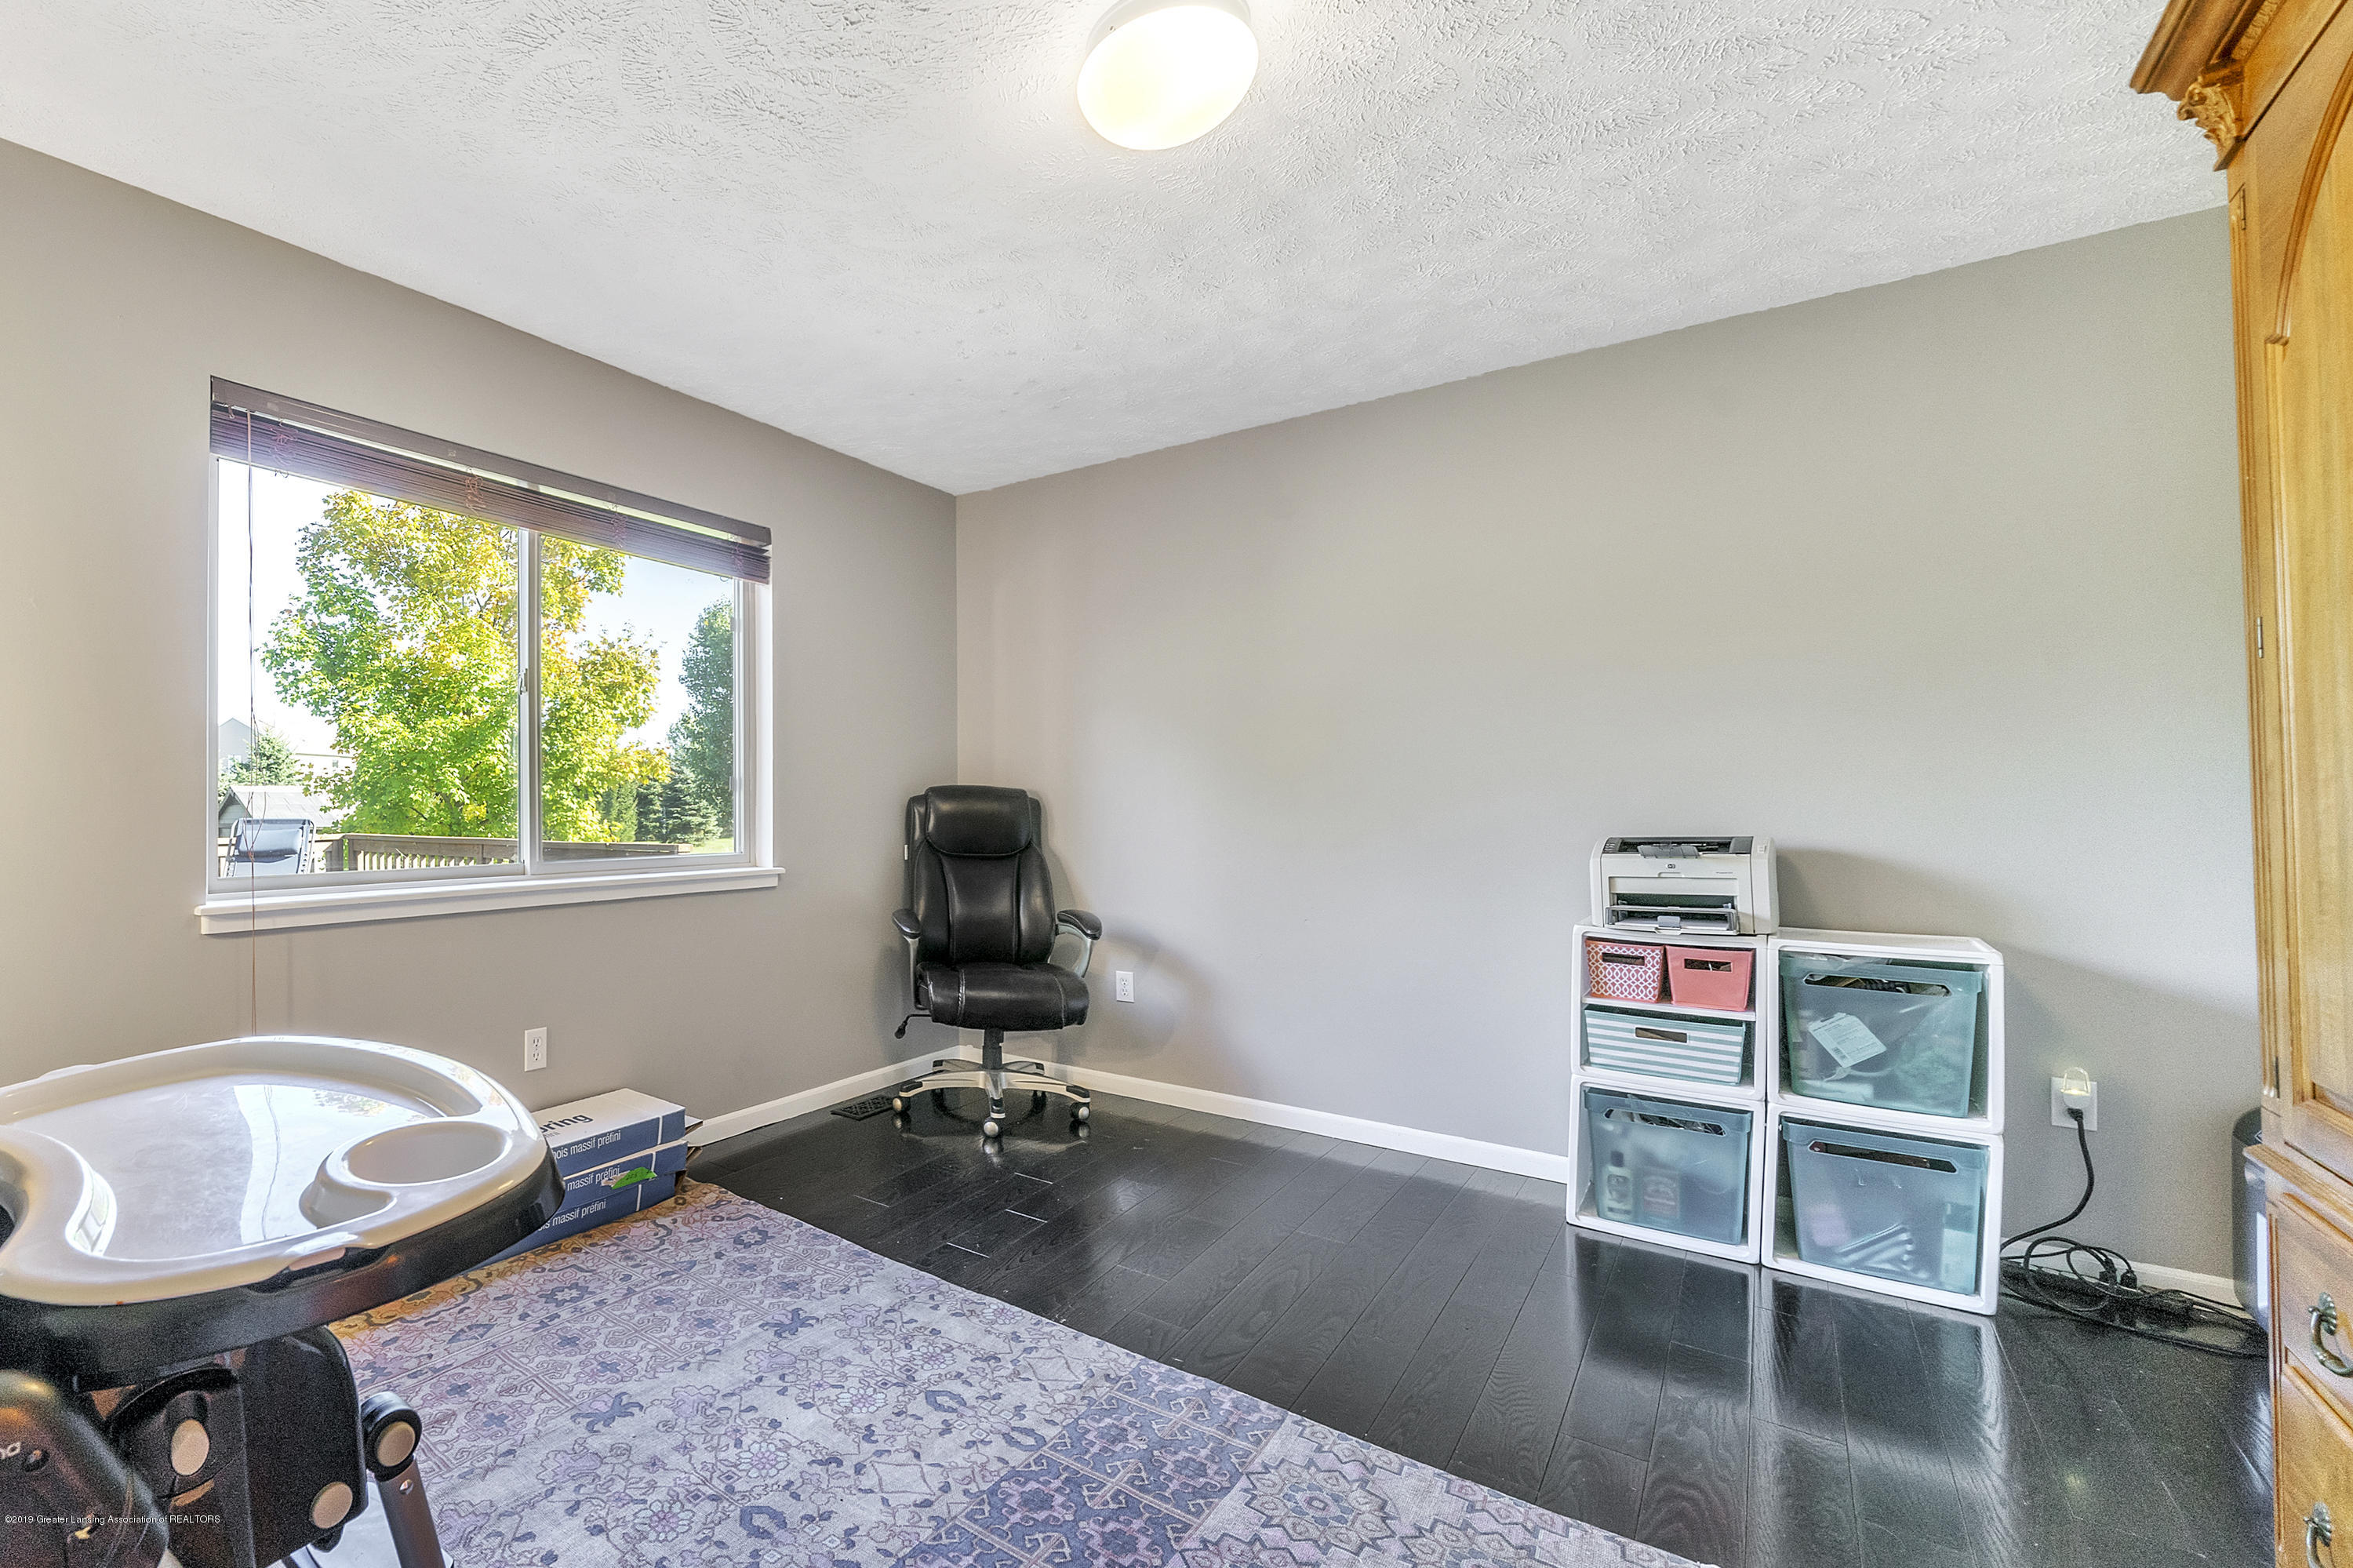 1258 Sumac Ln - 1258-Sumac-WindowStill-Real-Estate-Photo - 16